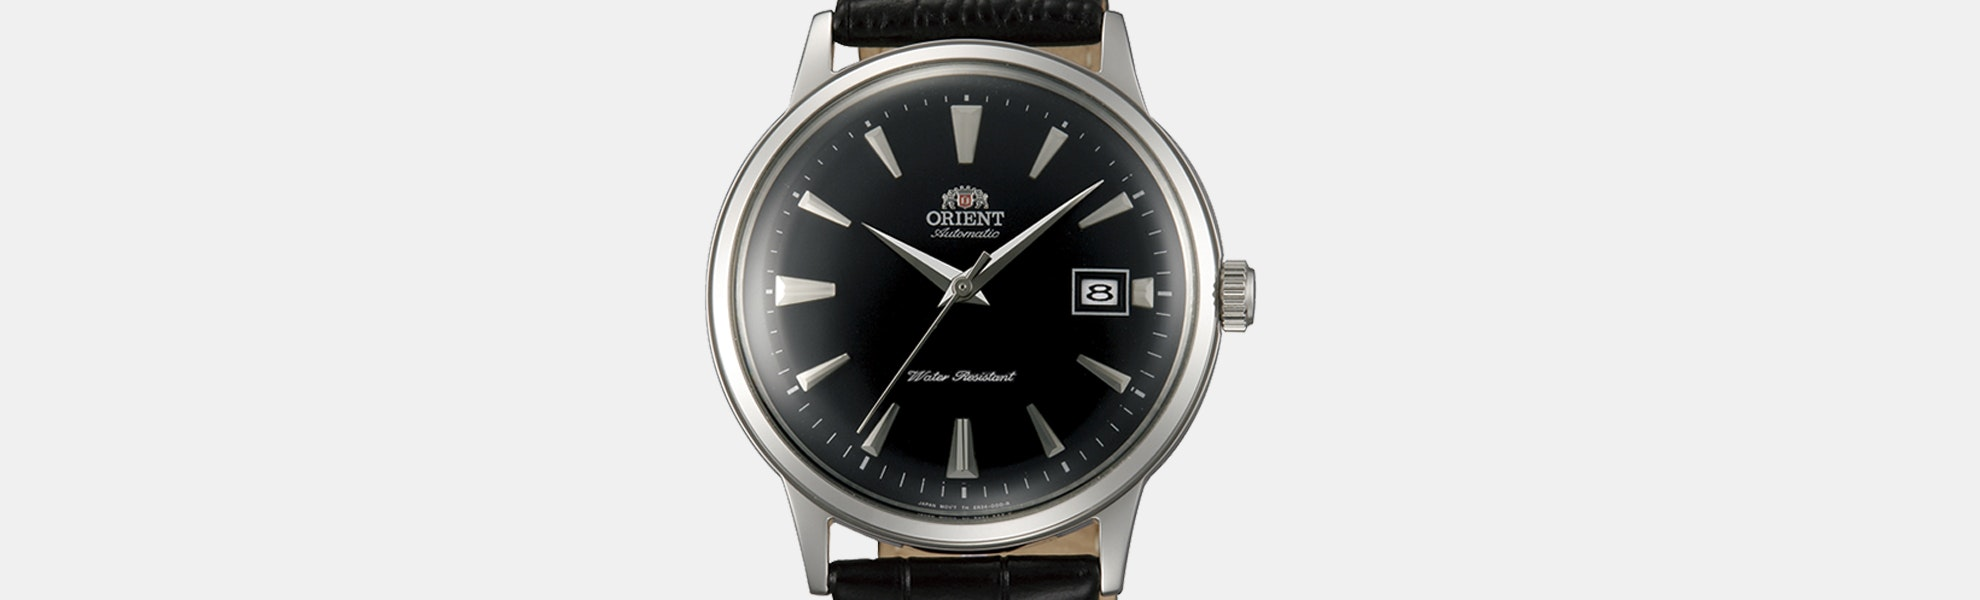 Orient Bambino Automatic Watch